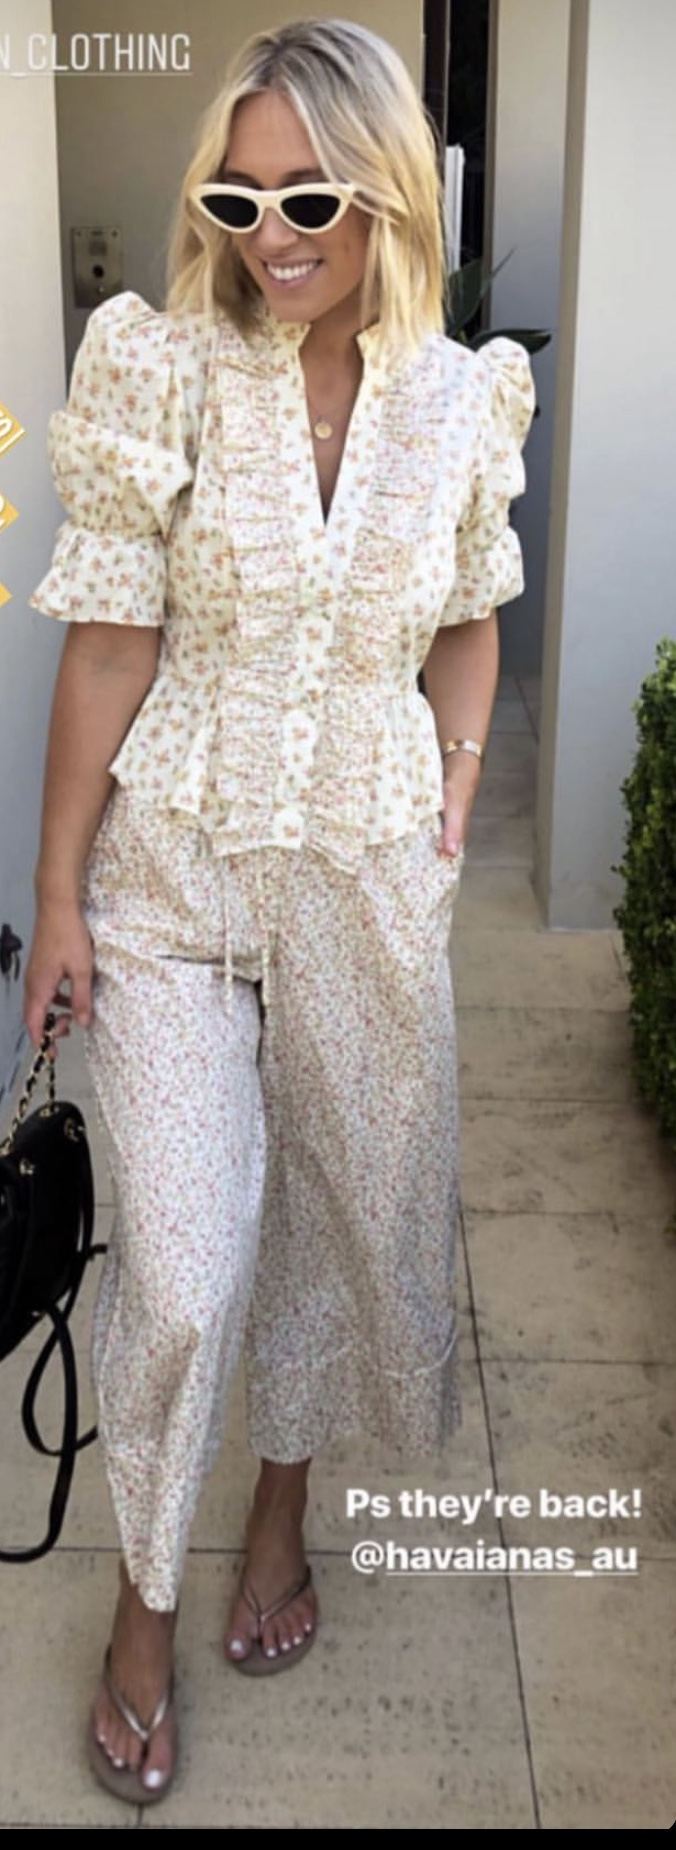 Easter Style: Men's & Women's Looks, floral blouse and pants, Petersyn nell floral top